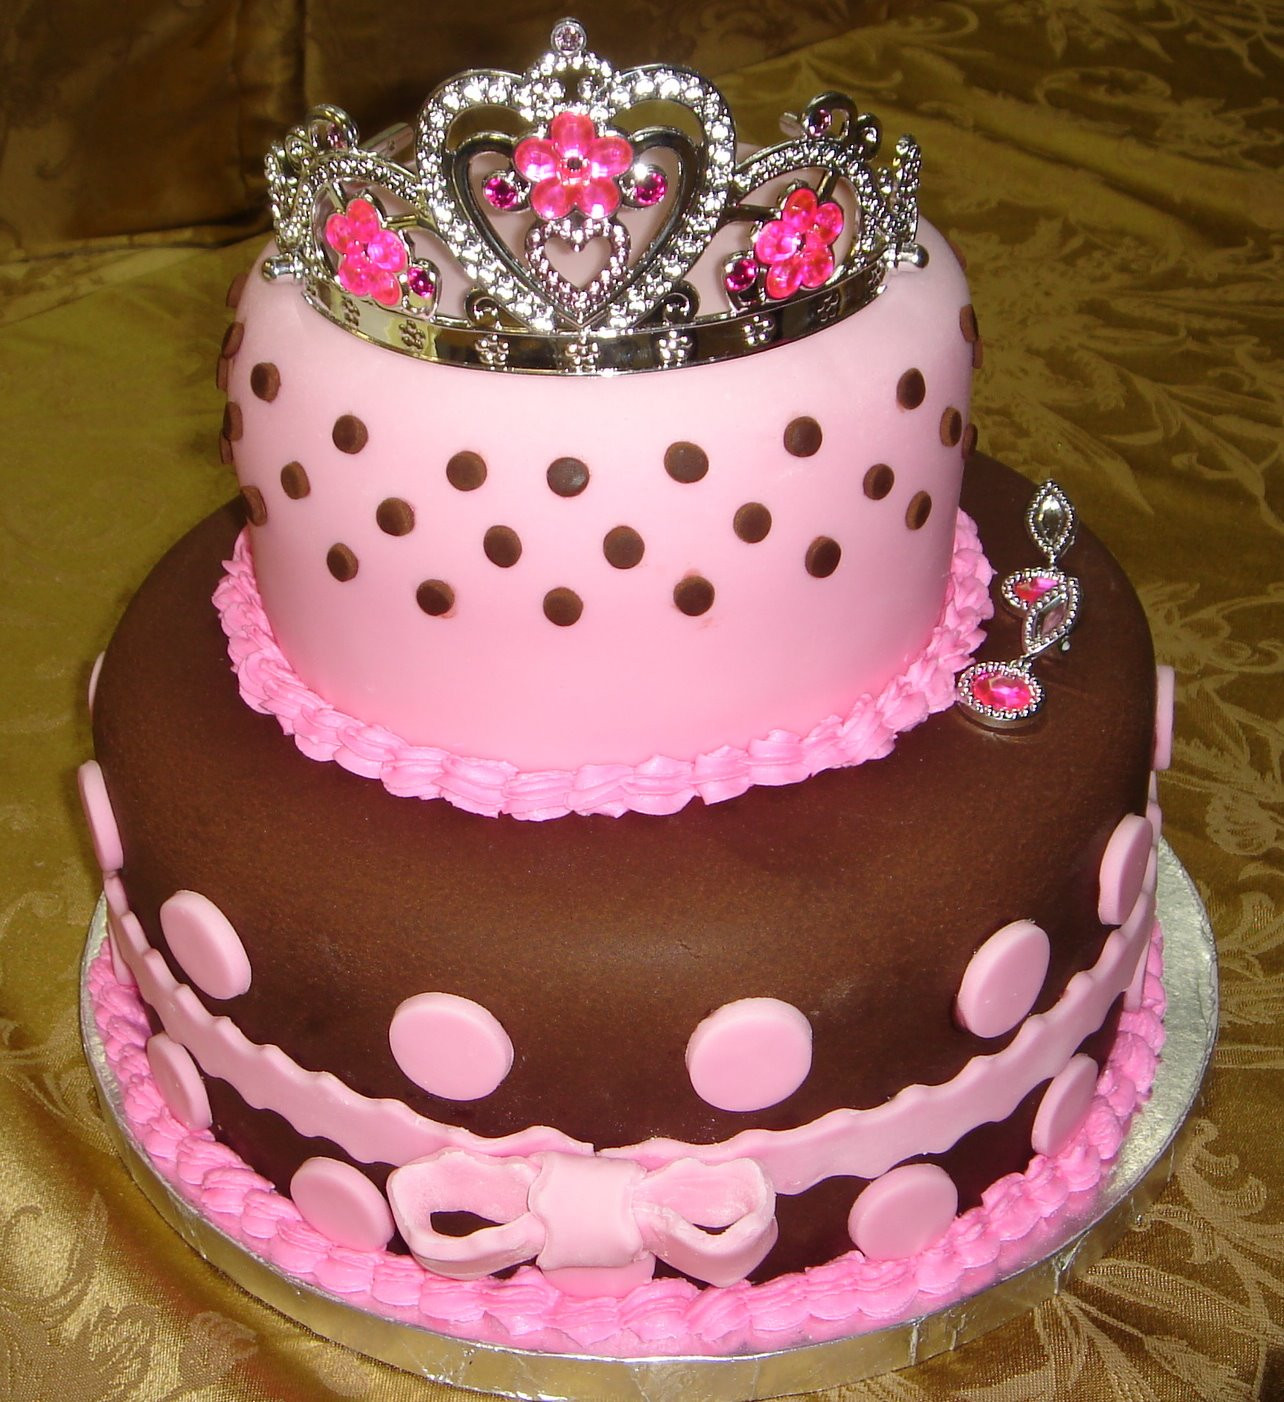 Best ideas about Princess Birthday Cake . Save or Pin cake birthday kids fondant buttercream princess castle Now.